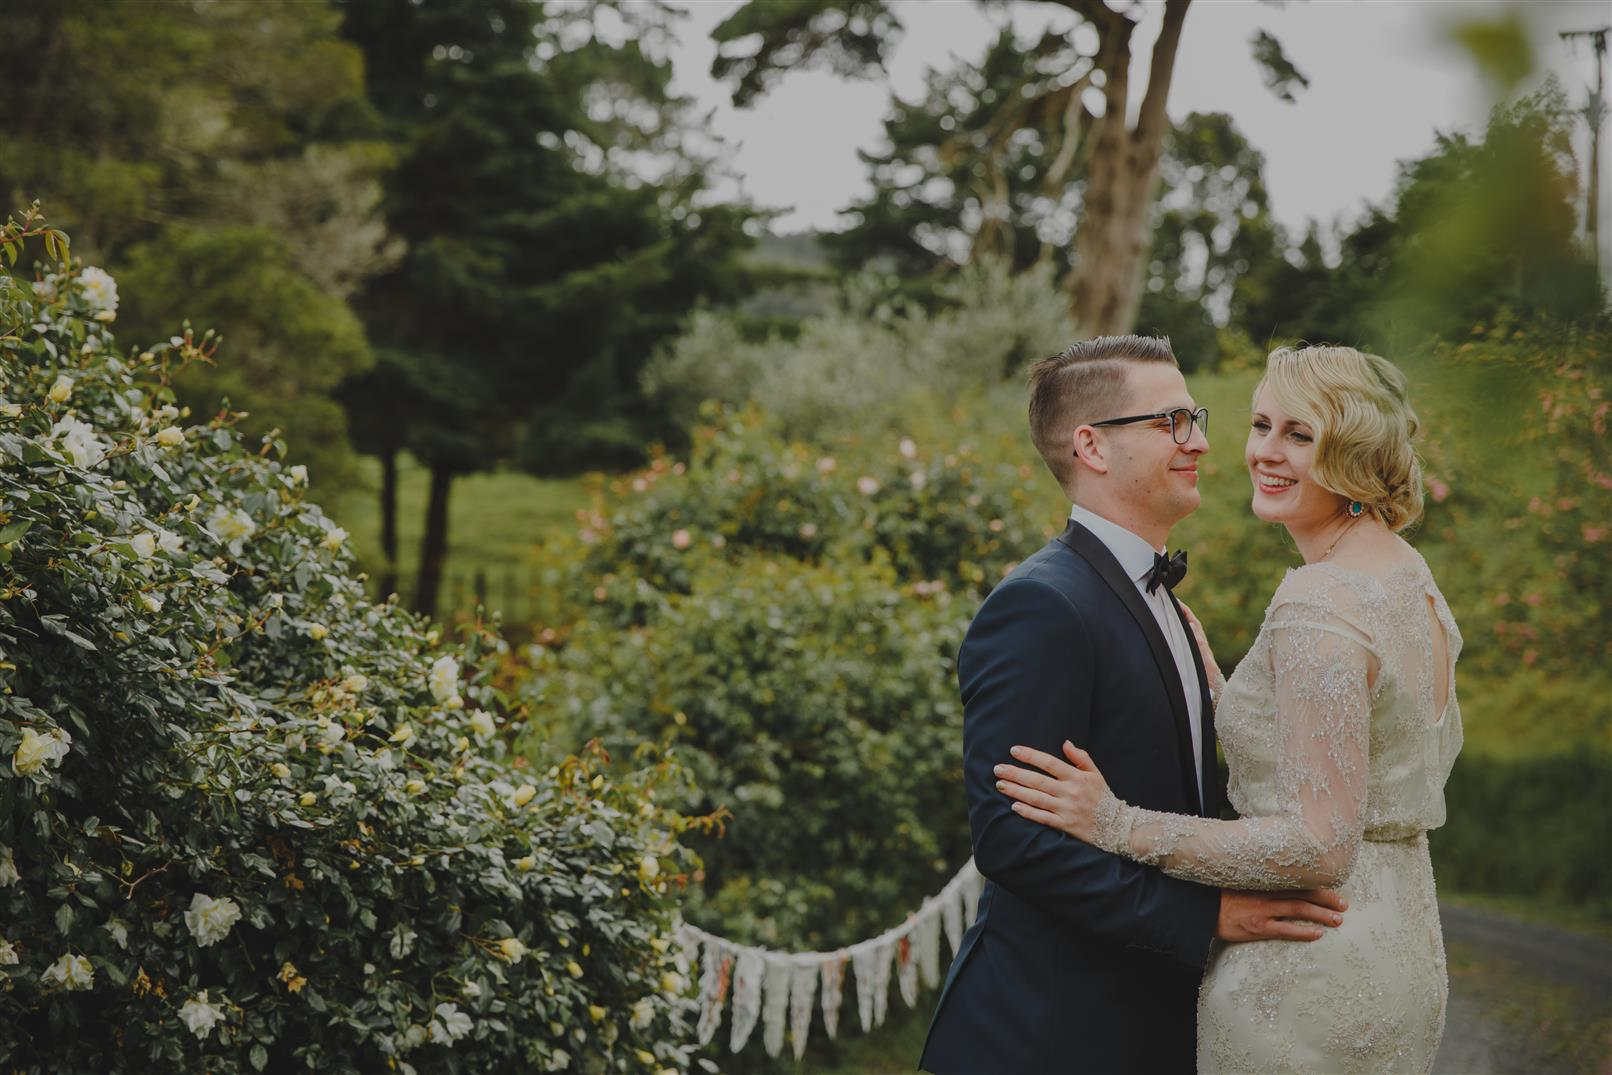 An Elegant Spring Vintage Wedding